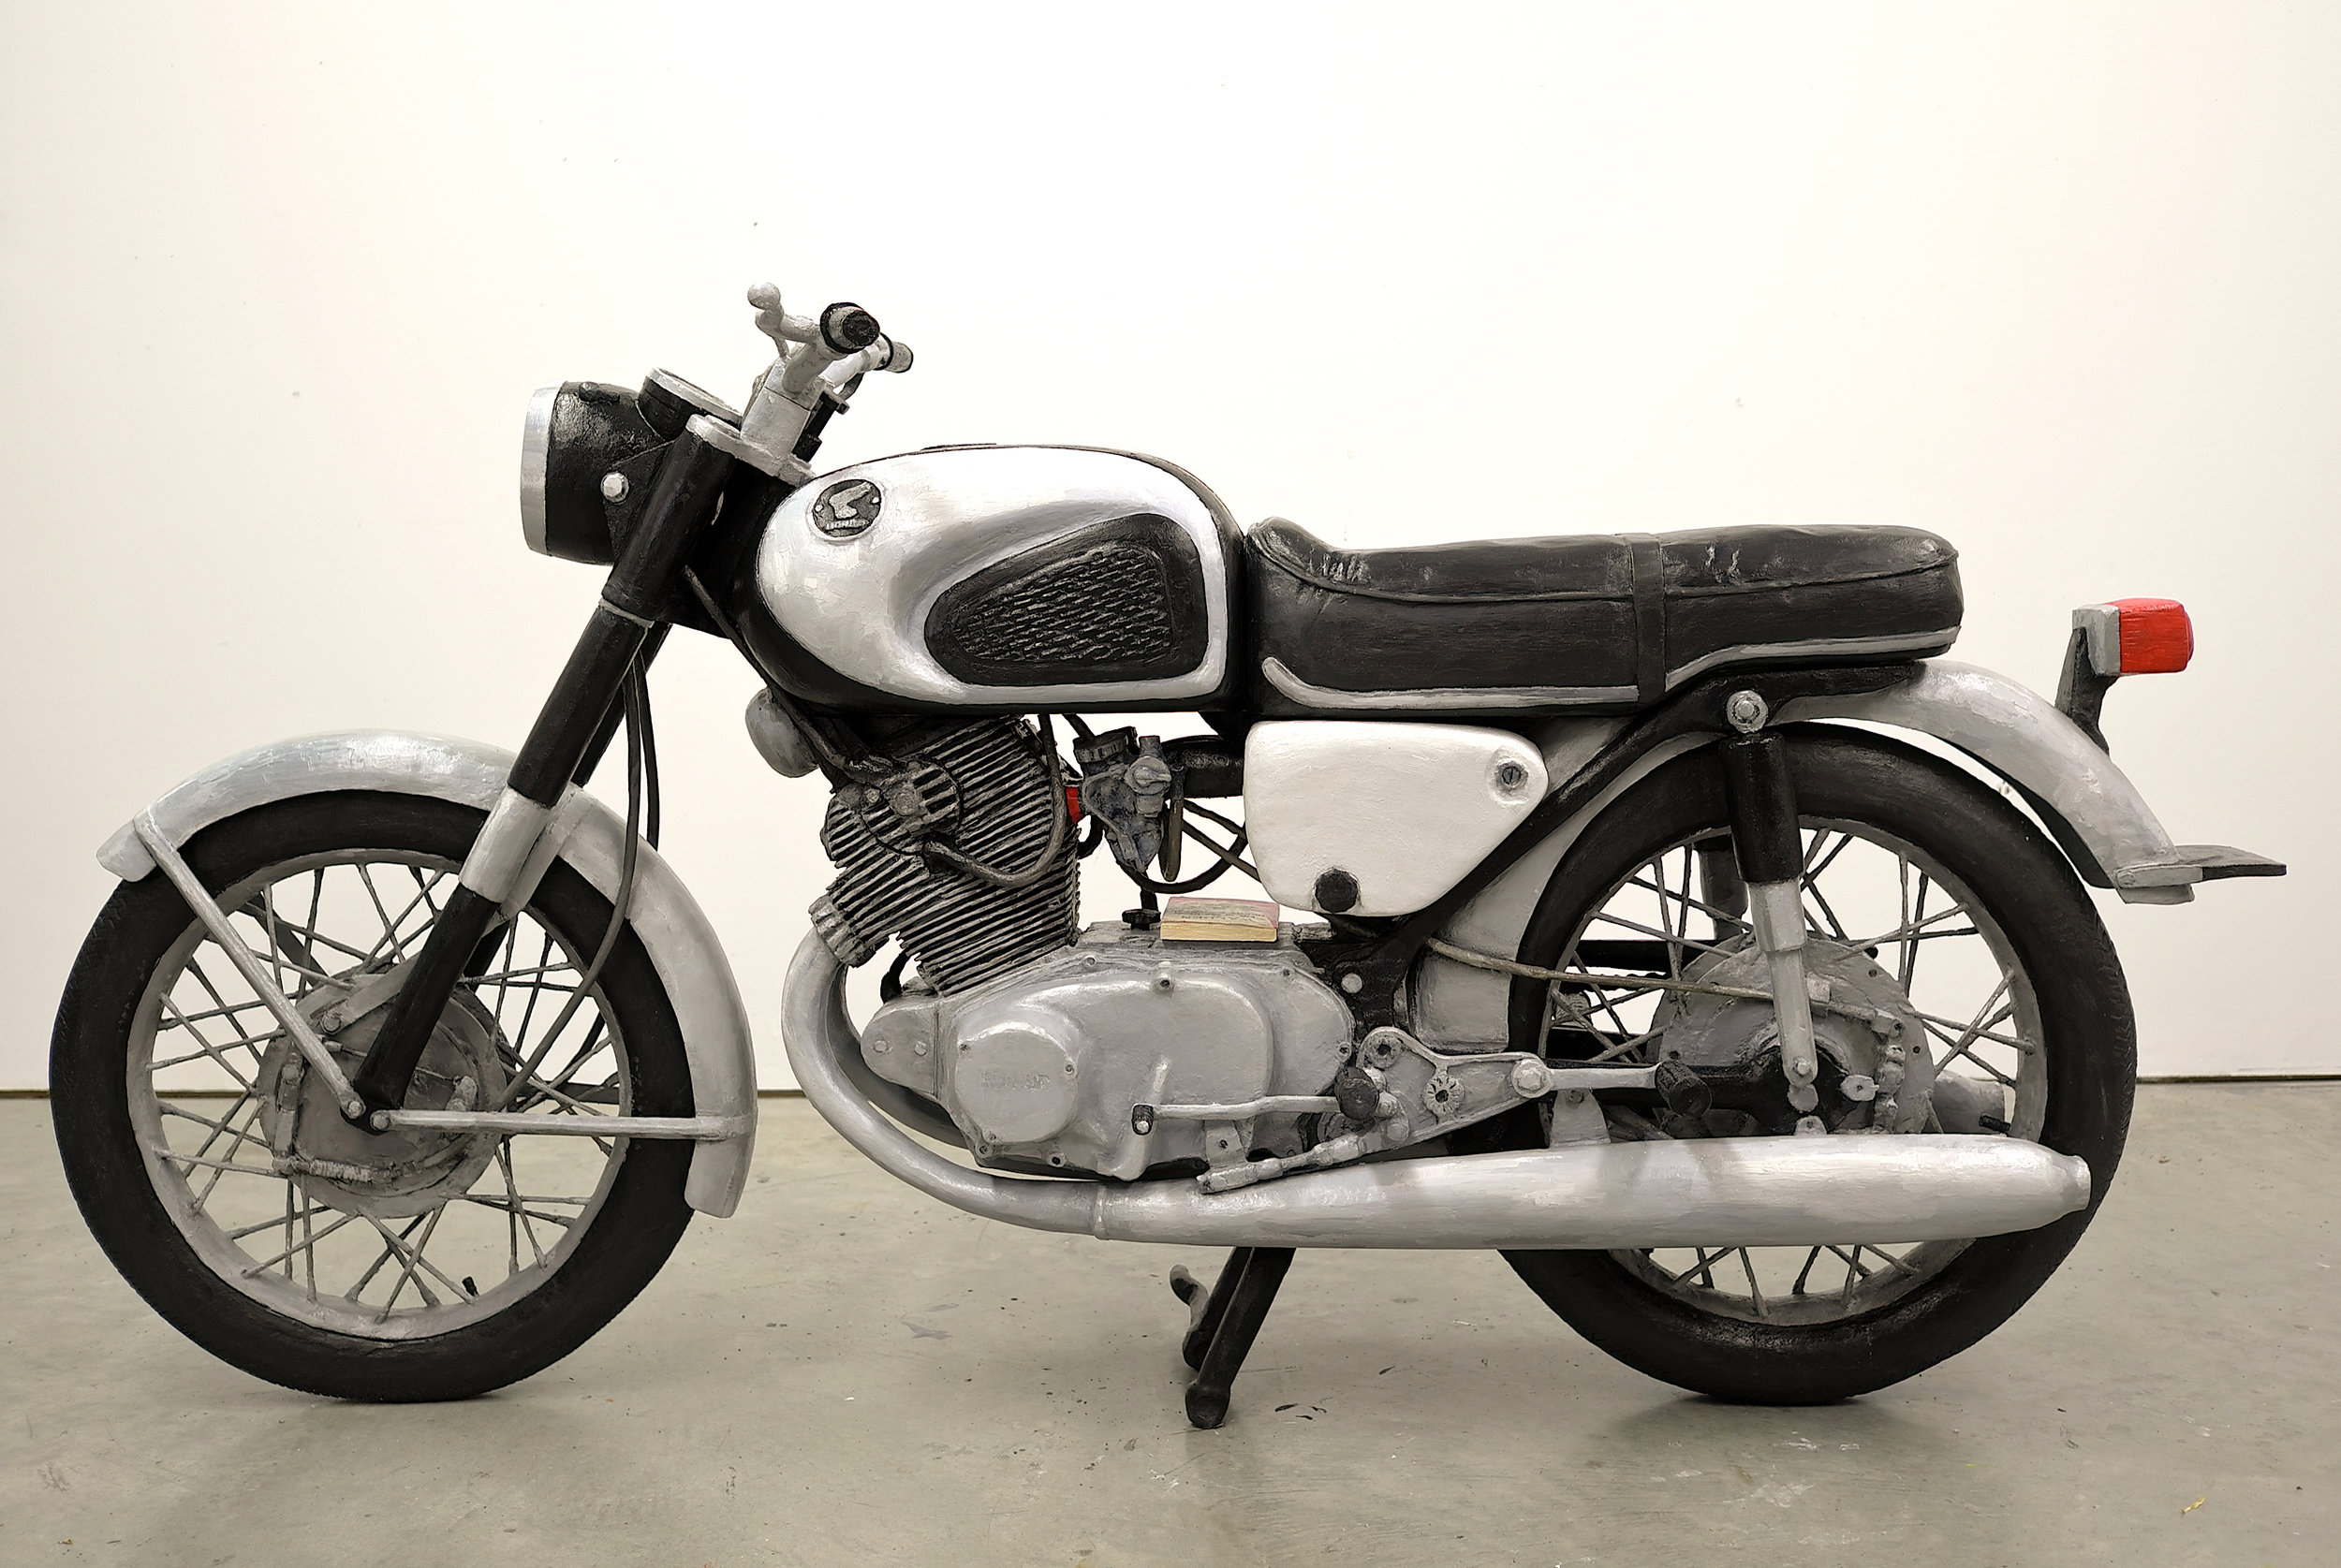 Untitled Project: Honda CB77 Super Hawk  Oil Paint on carved wood, 1:1 scale 2013-2014